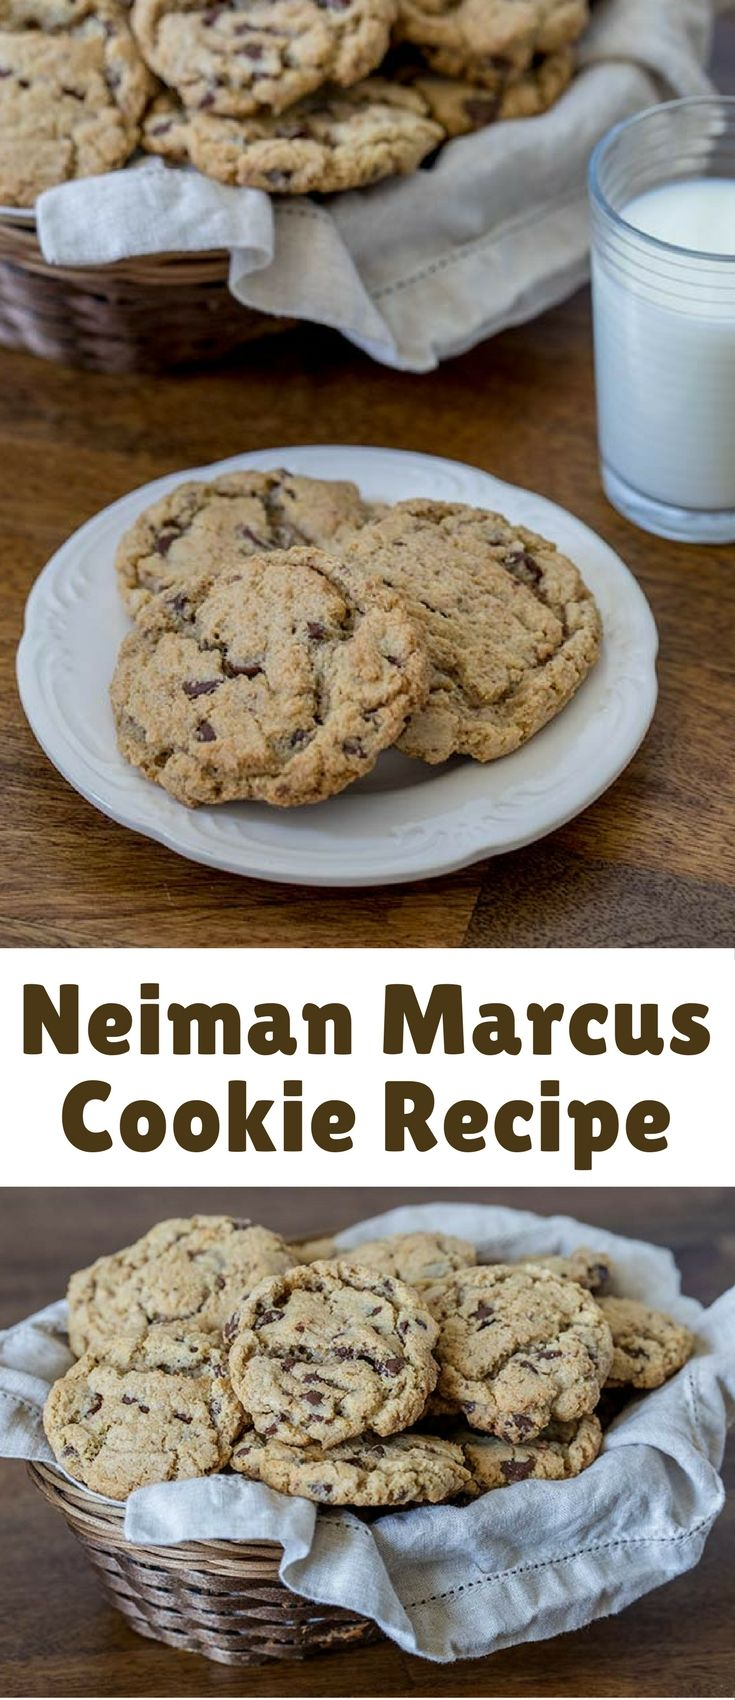 The famous Neiman Marcus Cookie Recipe. Blended oatmeal in the cookie dough is the secret ingredient that gives these cookies just a little more texture and body.